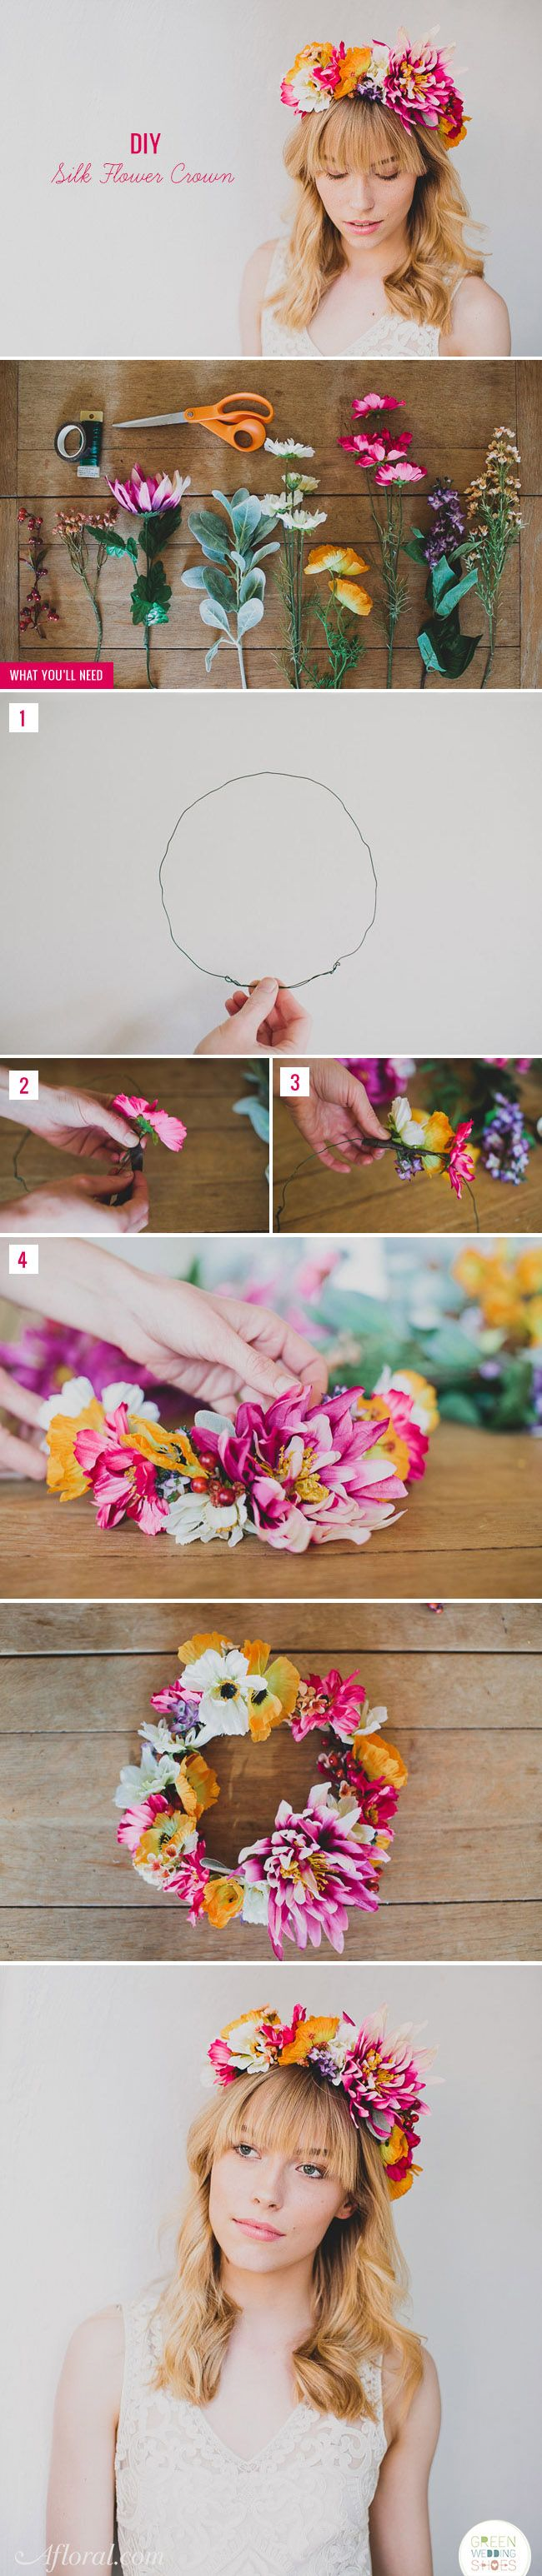 Diy silk flower crown centerpieces pinterest bridal flowers beautiful boho bridal flower crown made by green wedding shoes with flowers from afloral find everything you need to make your own at afloral izmirmasajfo